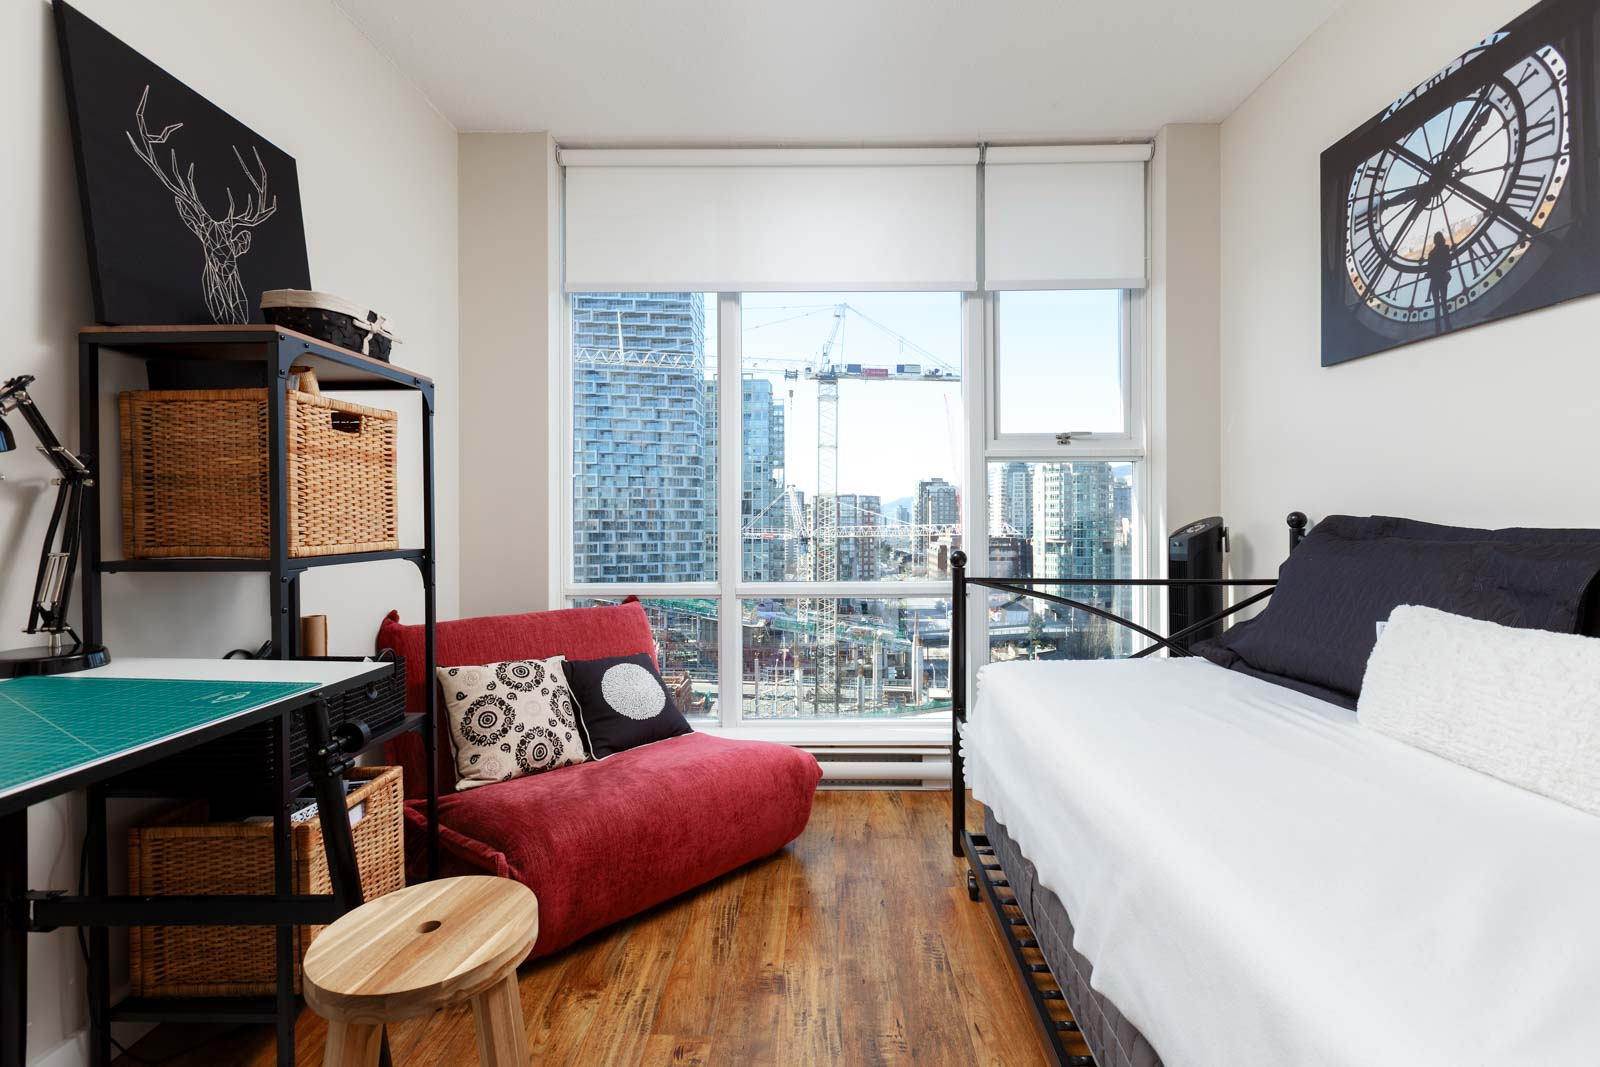 Bedroom in Yaletown Vancouver condo with view.